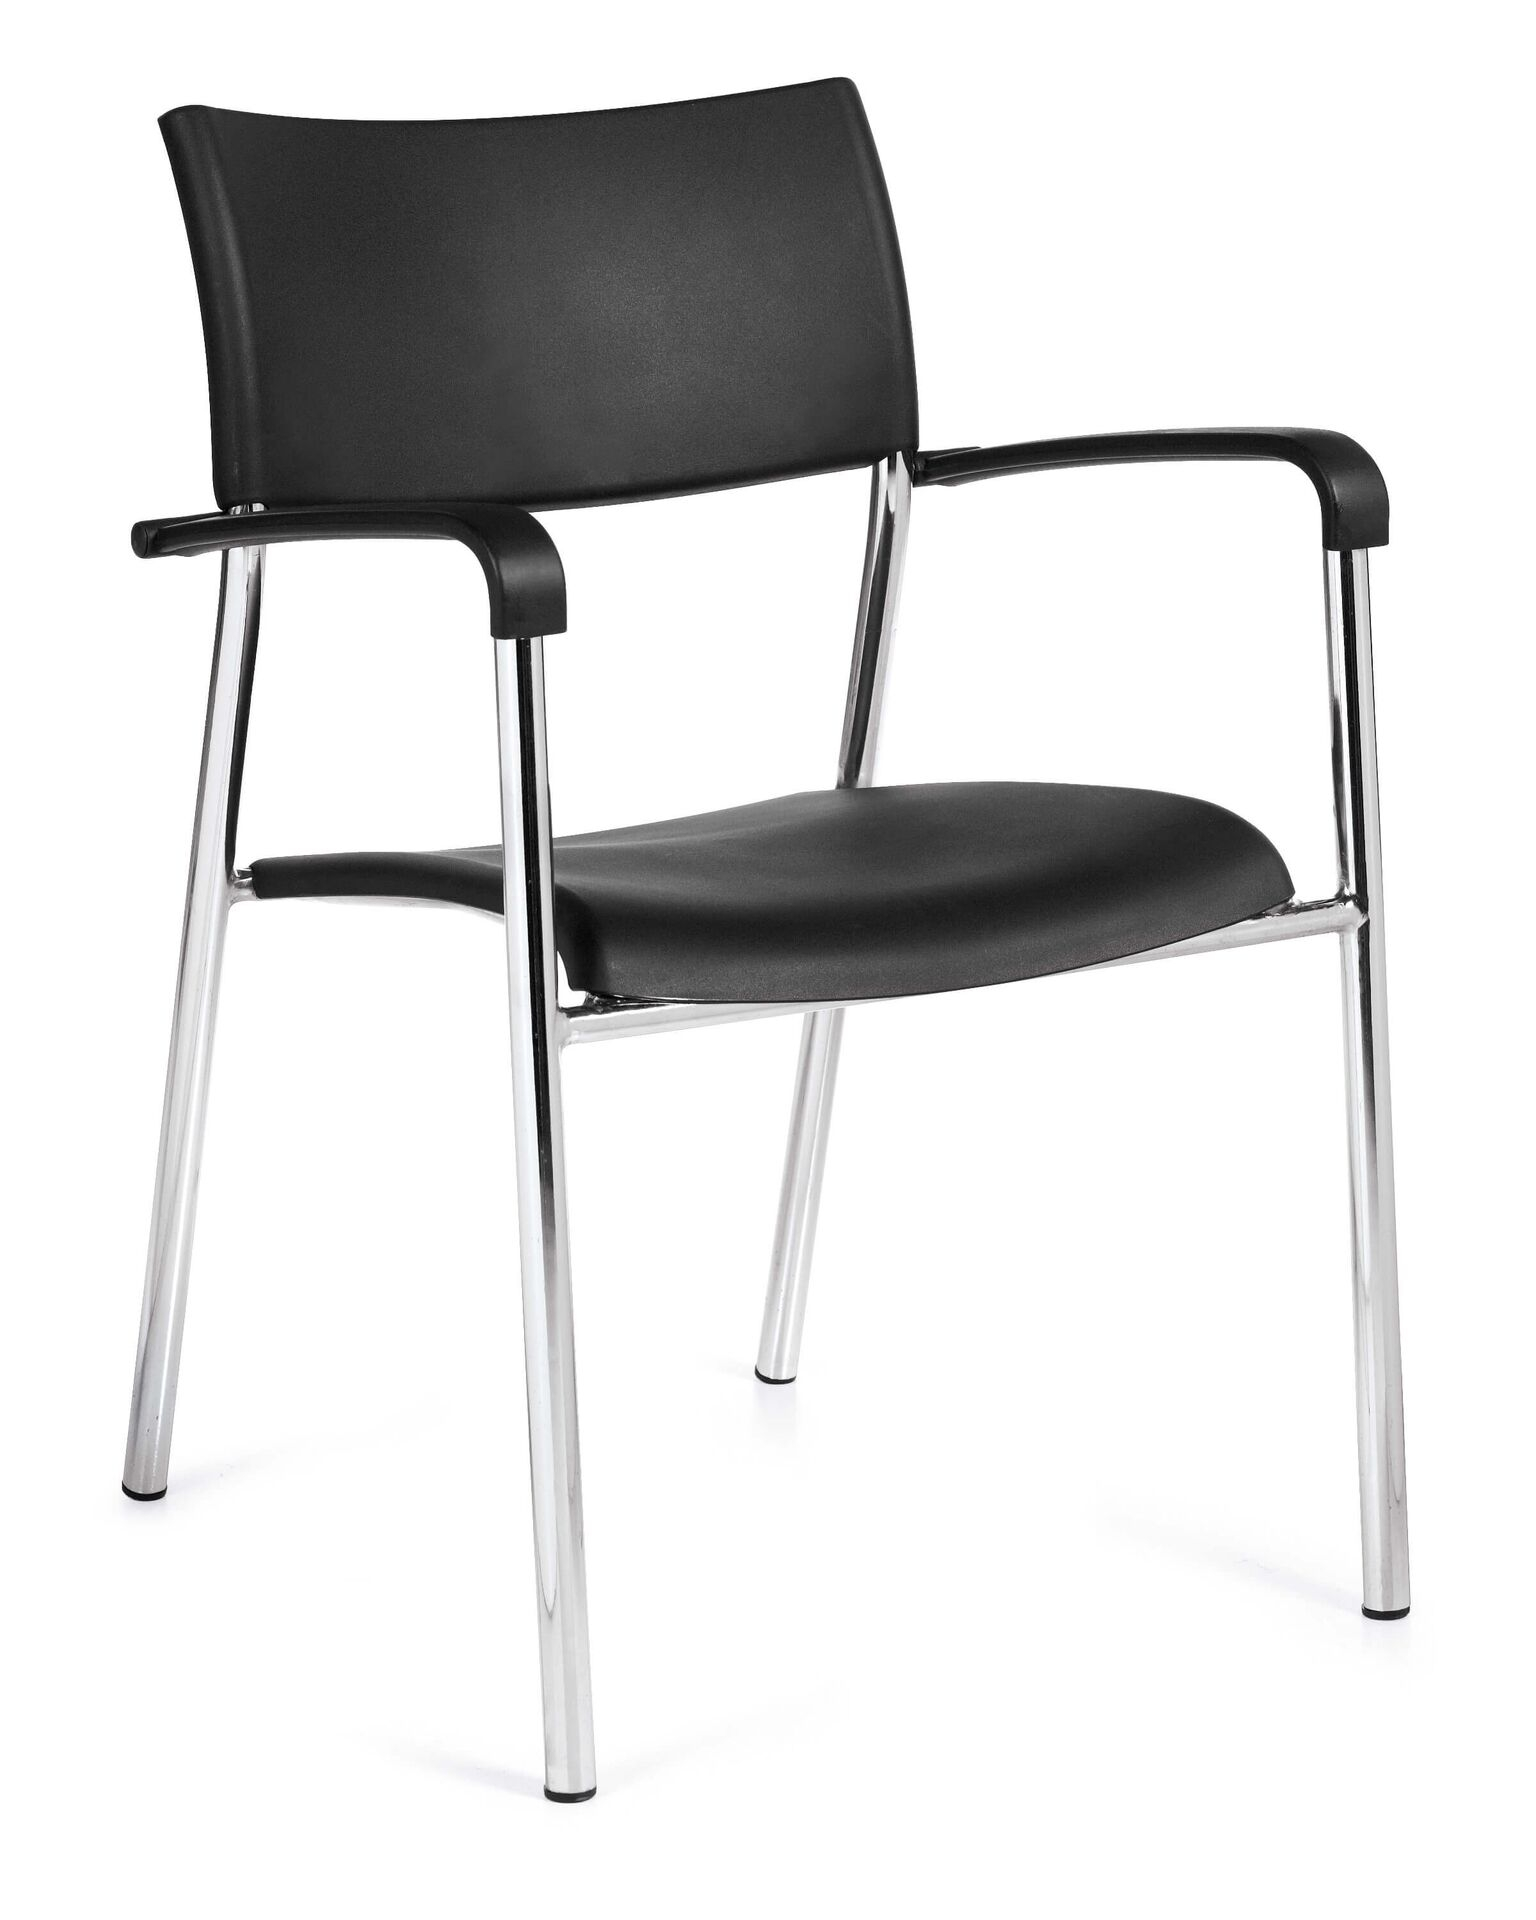 stackable-chairs-CUB-OTG1220B-GTO_preview.jpg